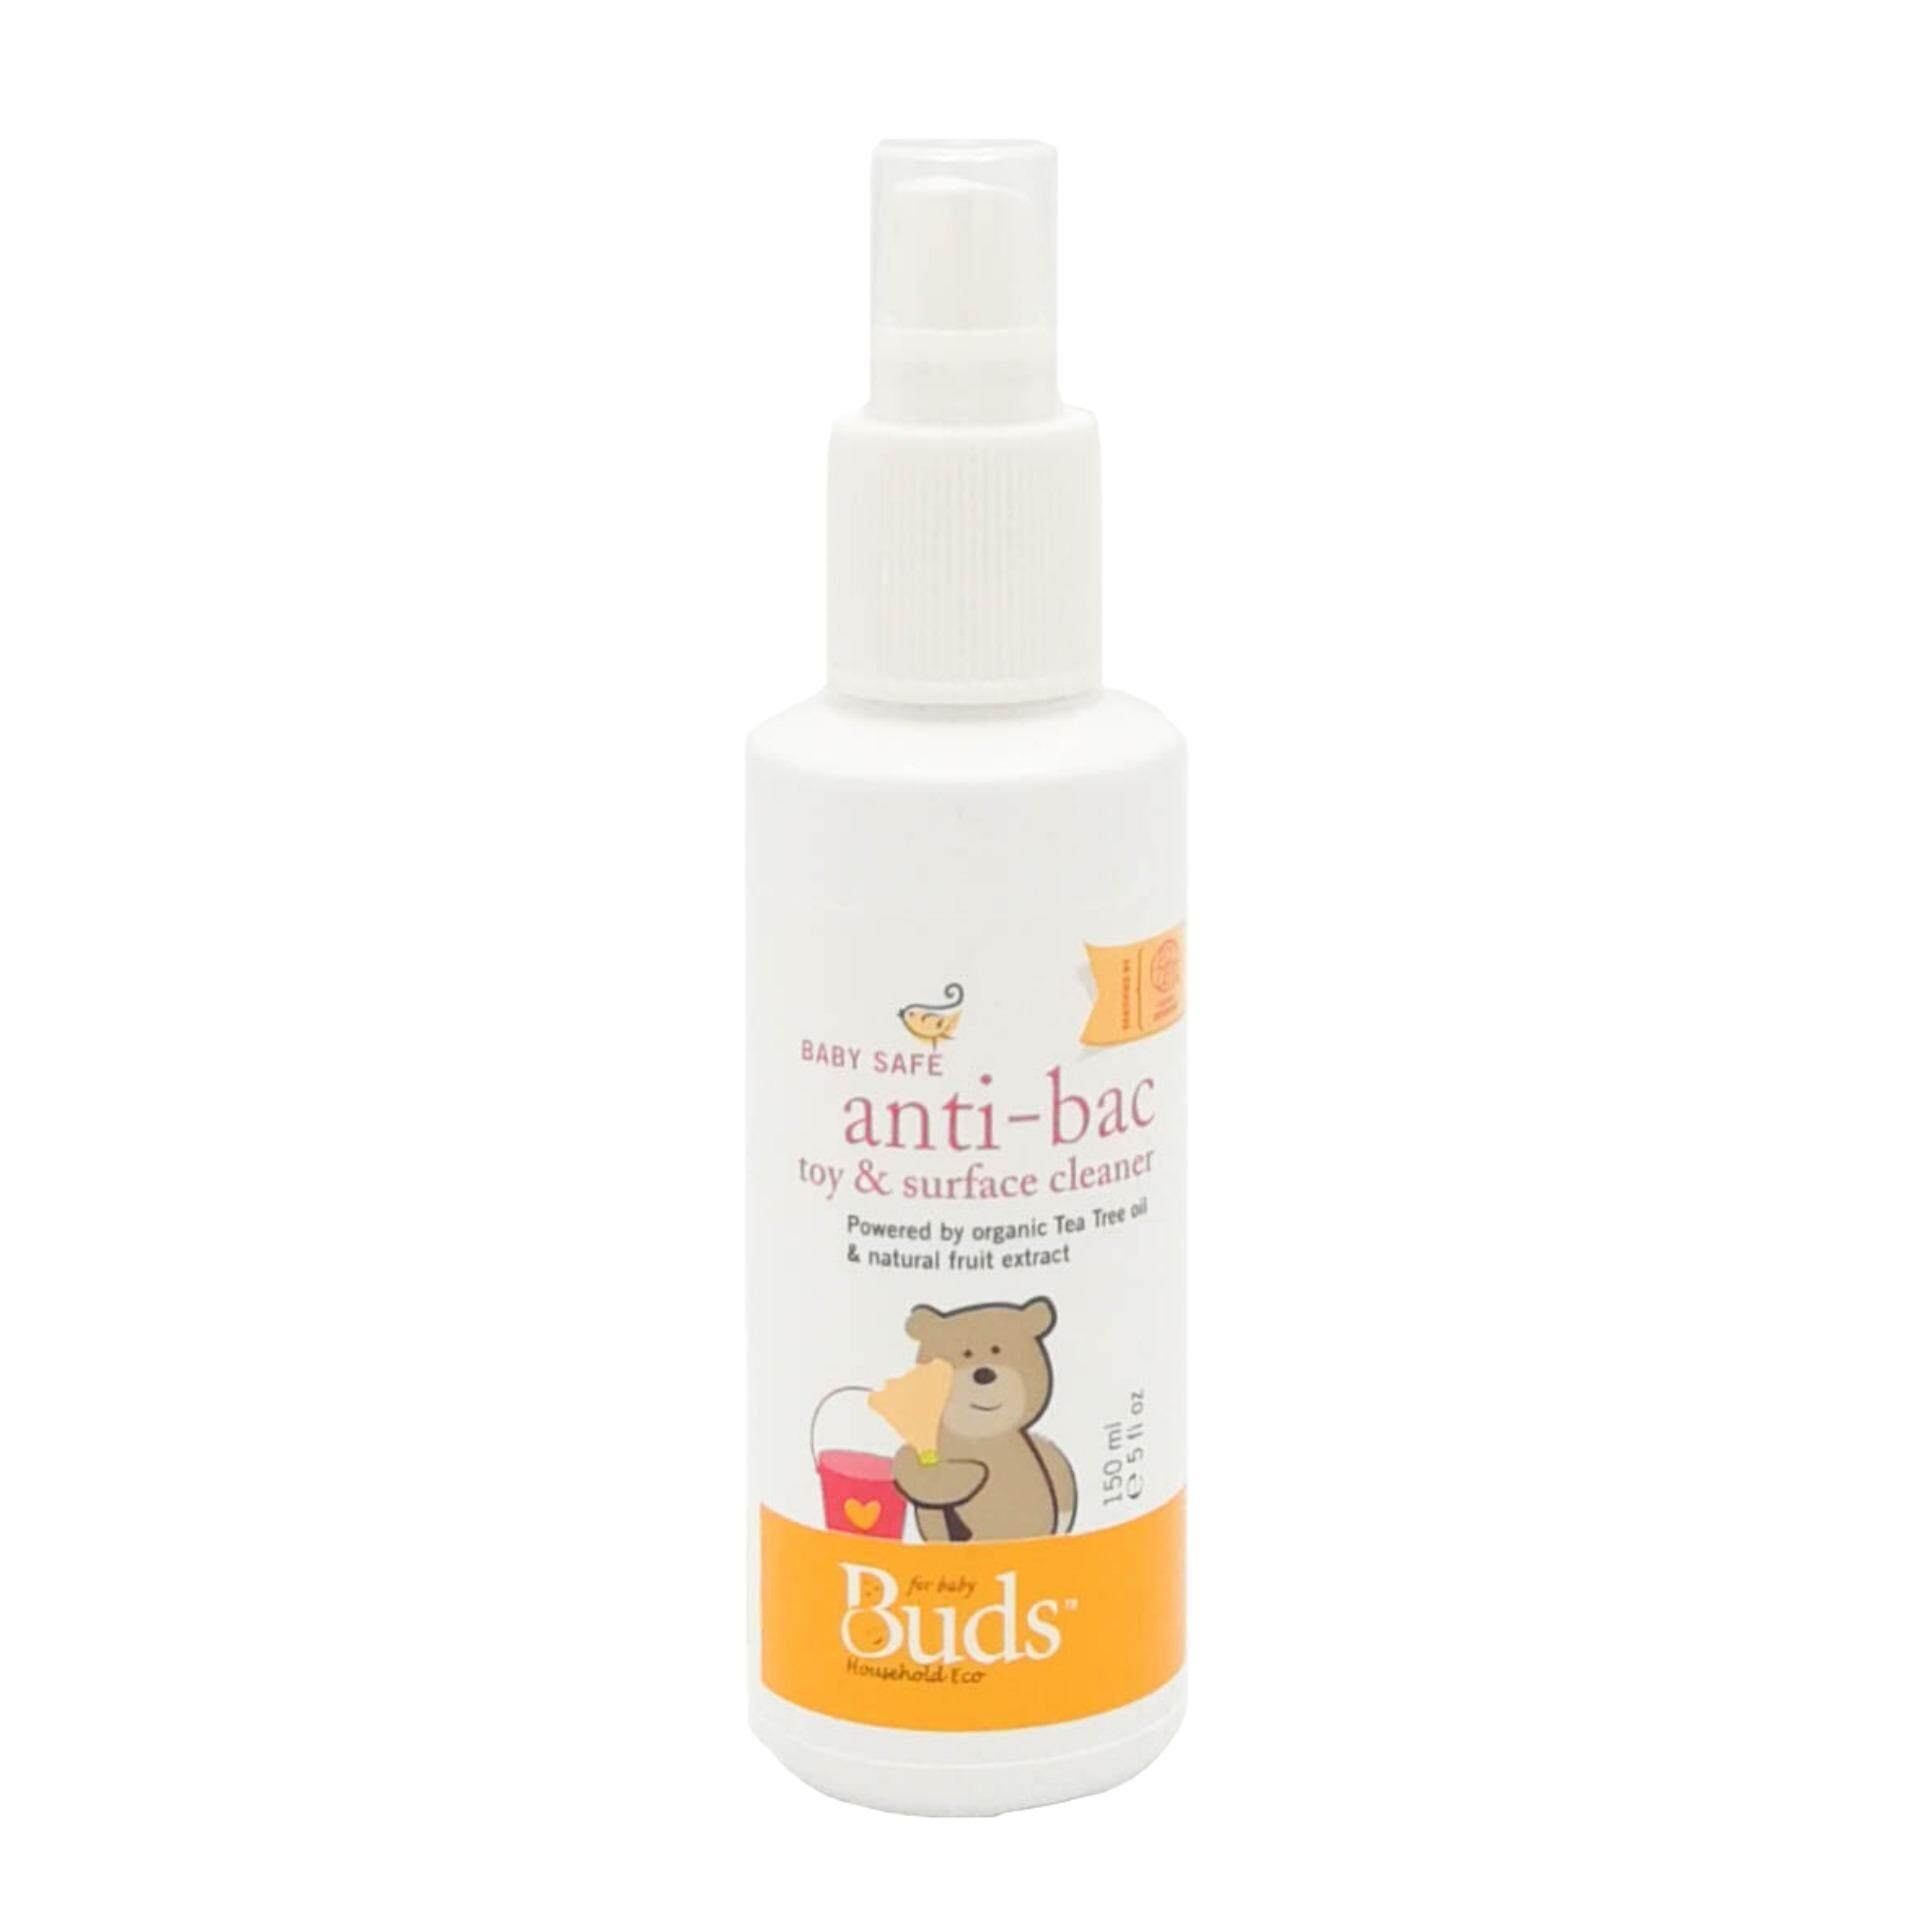 Buds Organics Buy At Best Price In Malaysia Www Mozzie Clear Spray 100ml Household Eco Baby Safe Anti Bac Toy Surface Cleanser 150ml